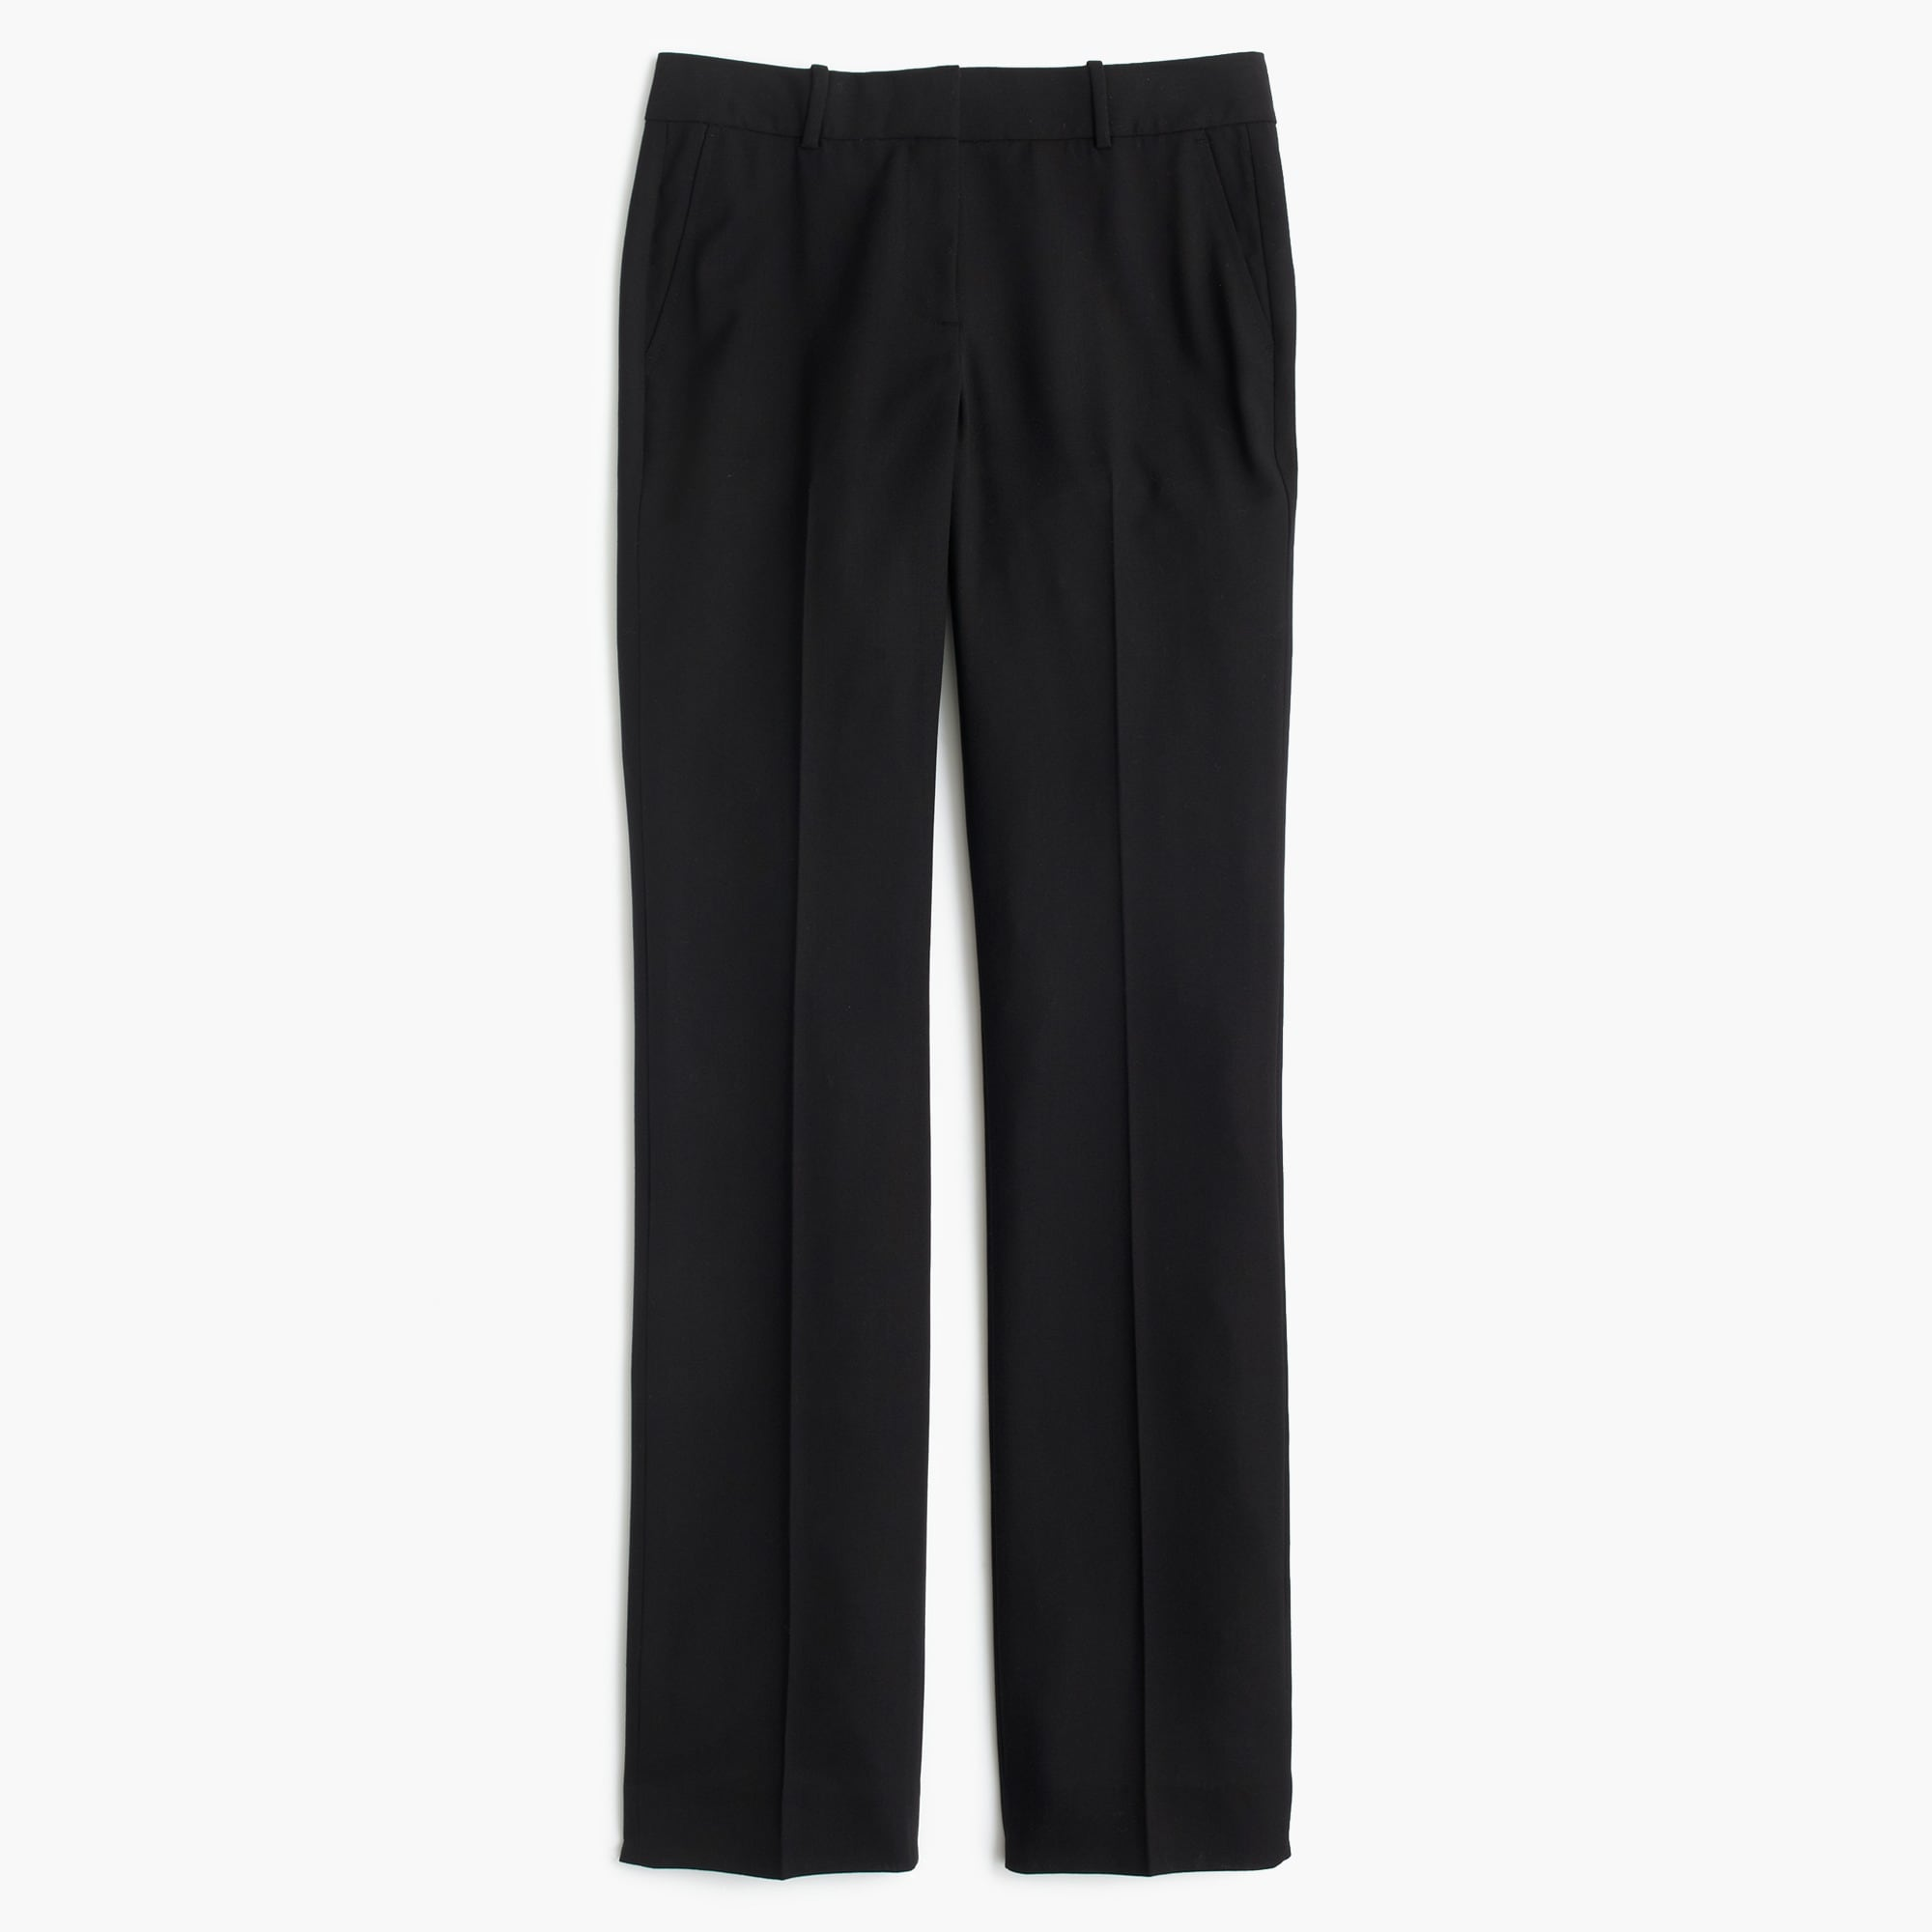 Image 2 for Campbell Traveler trouser in Italian wool